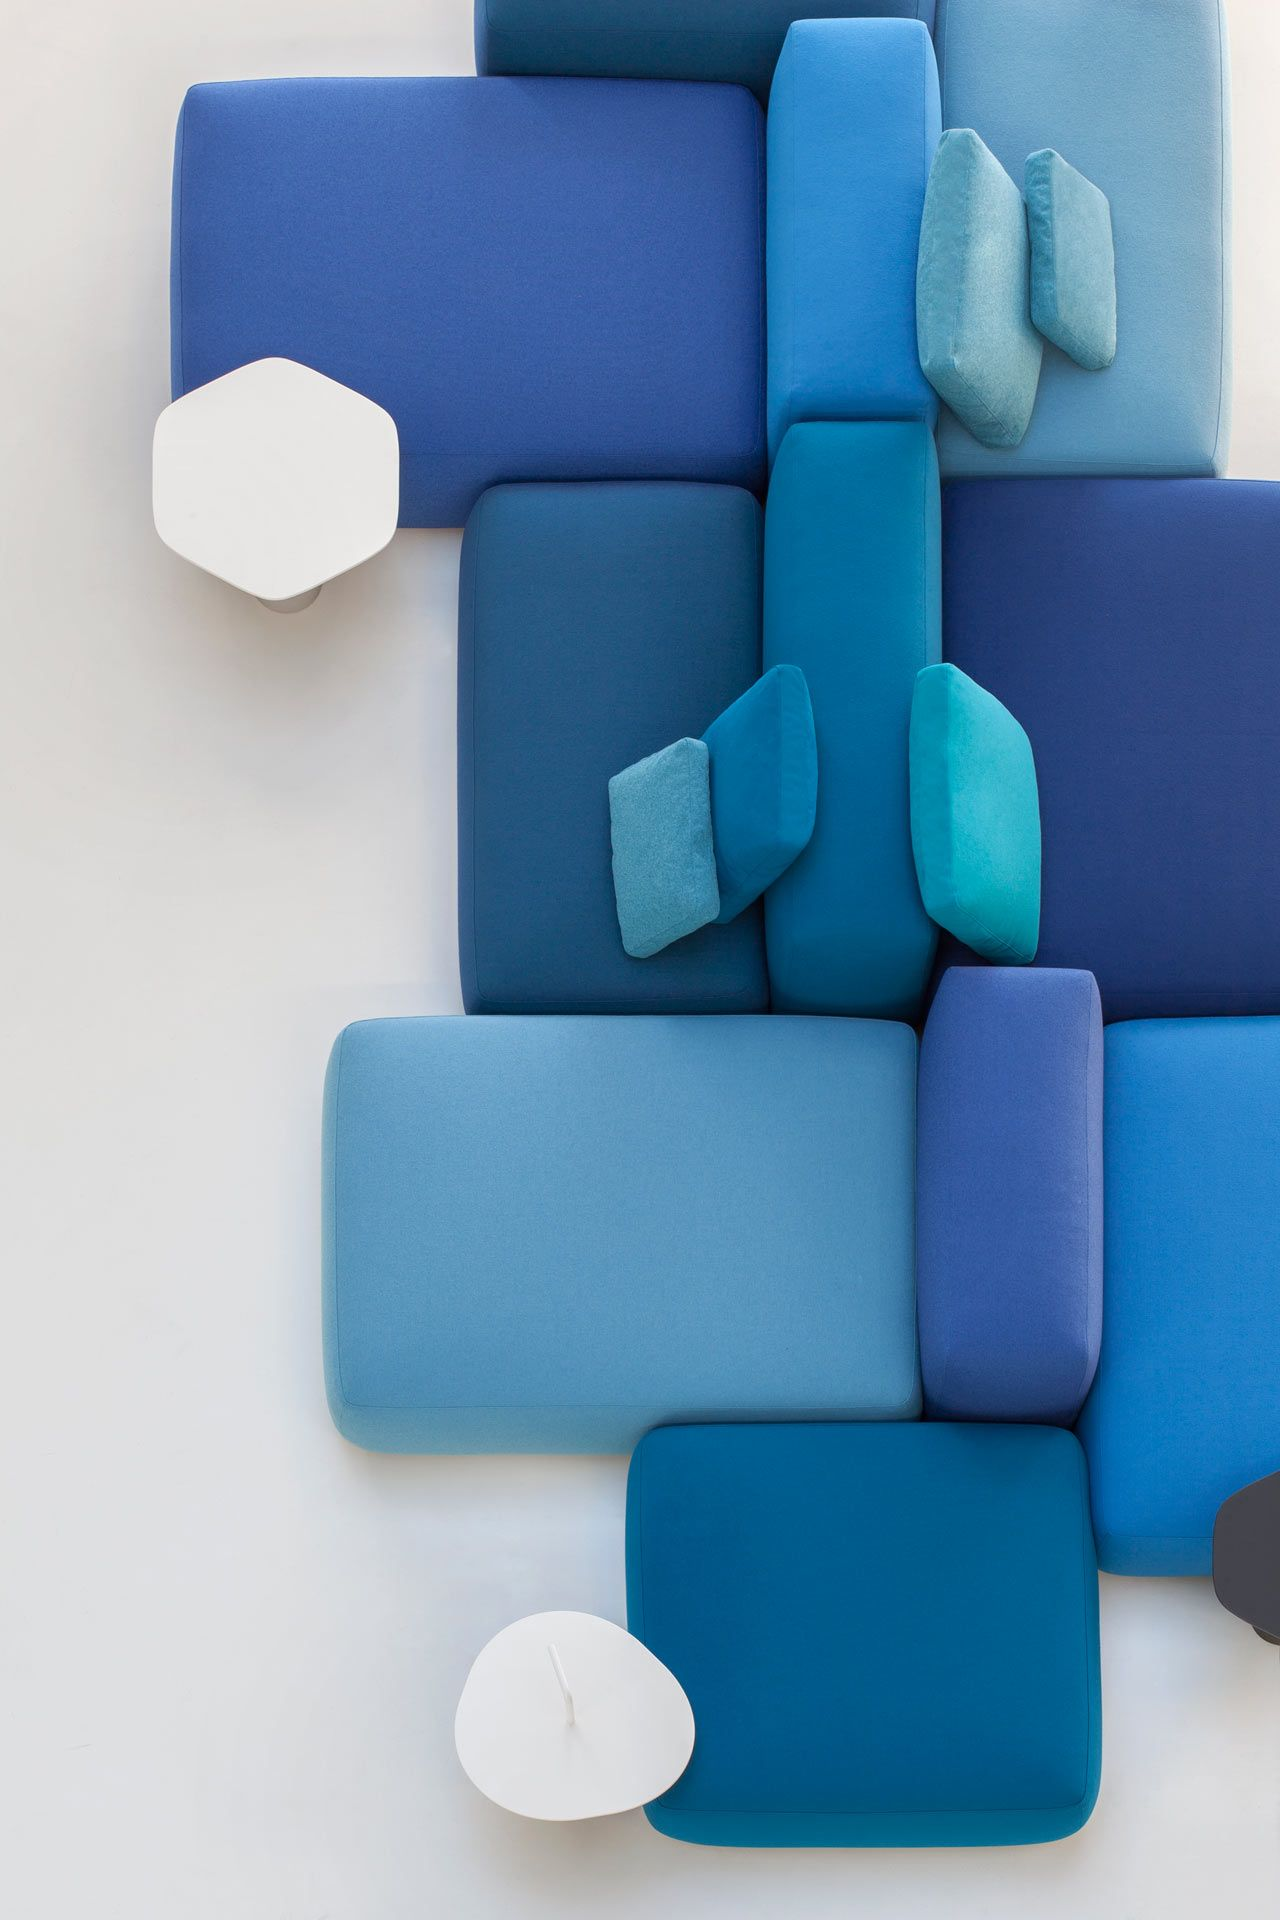 PLUS Modular Seating System By Francesco Rota For Lapalma   Design Milk  Modular Furniture, Home